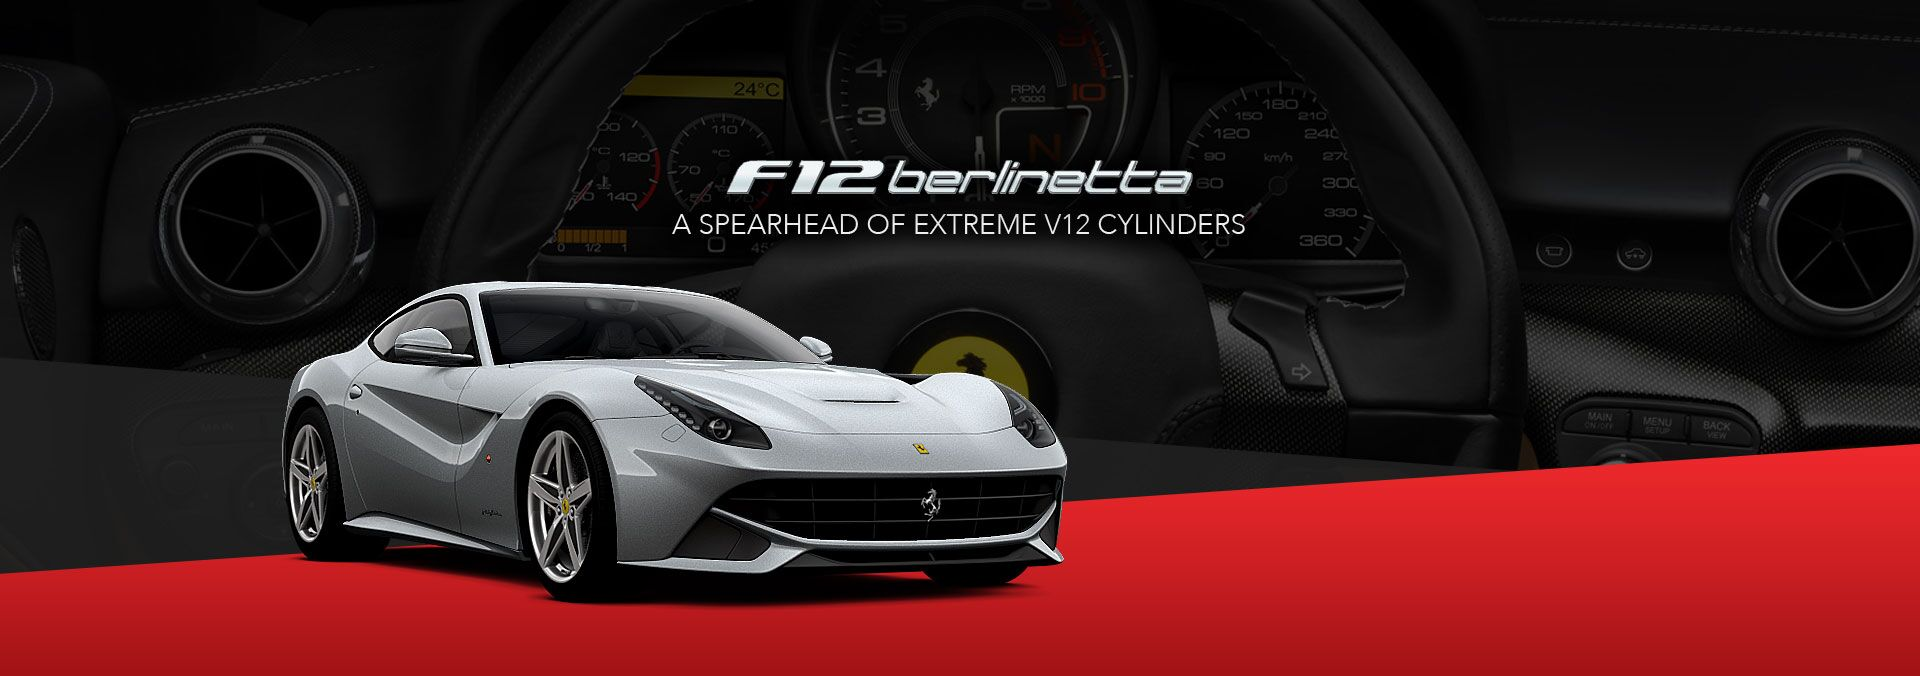 New Ferrari F12 Berlinetta